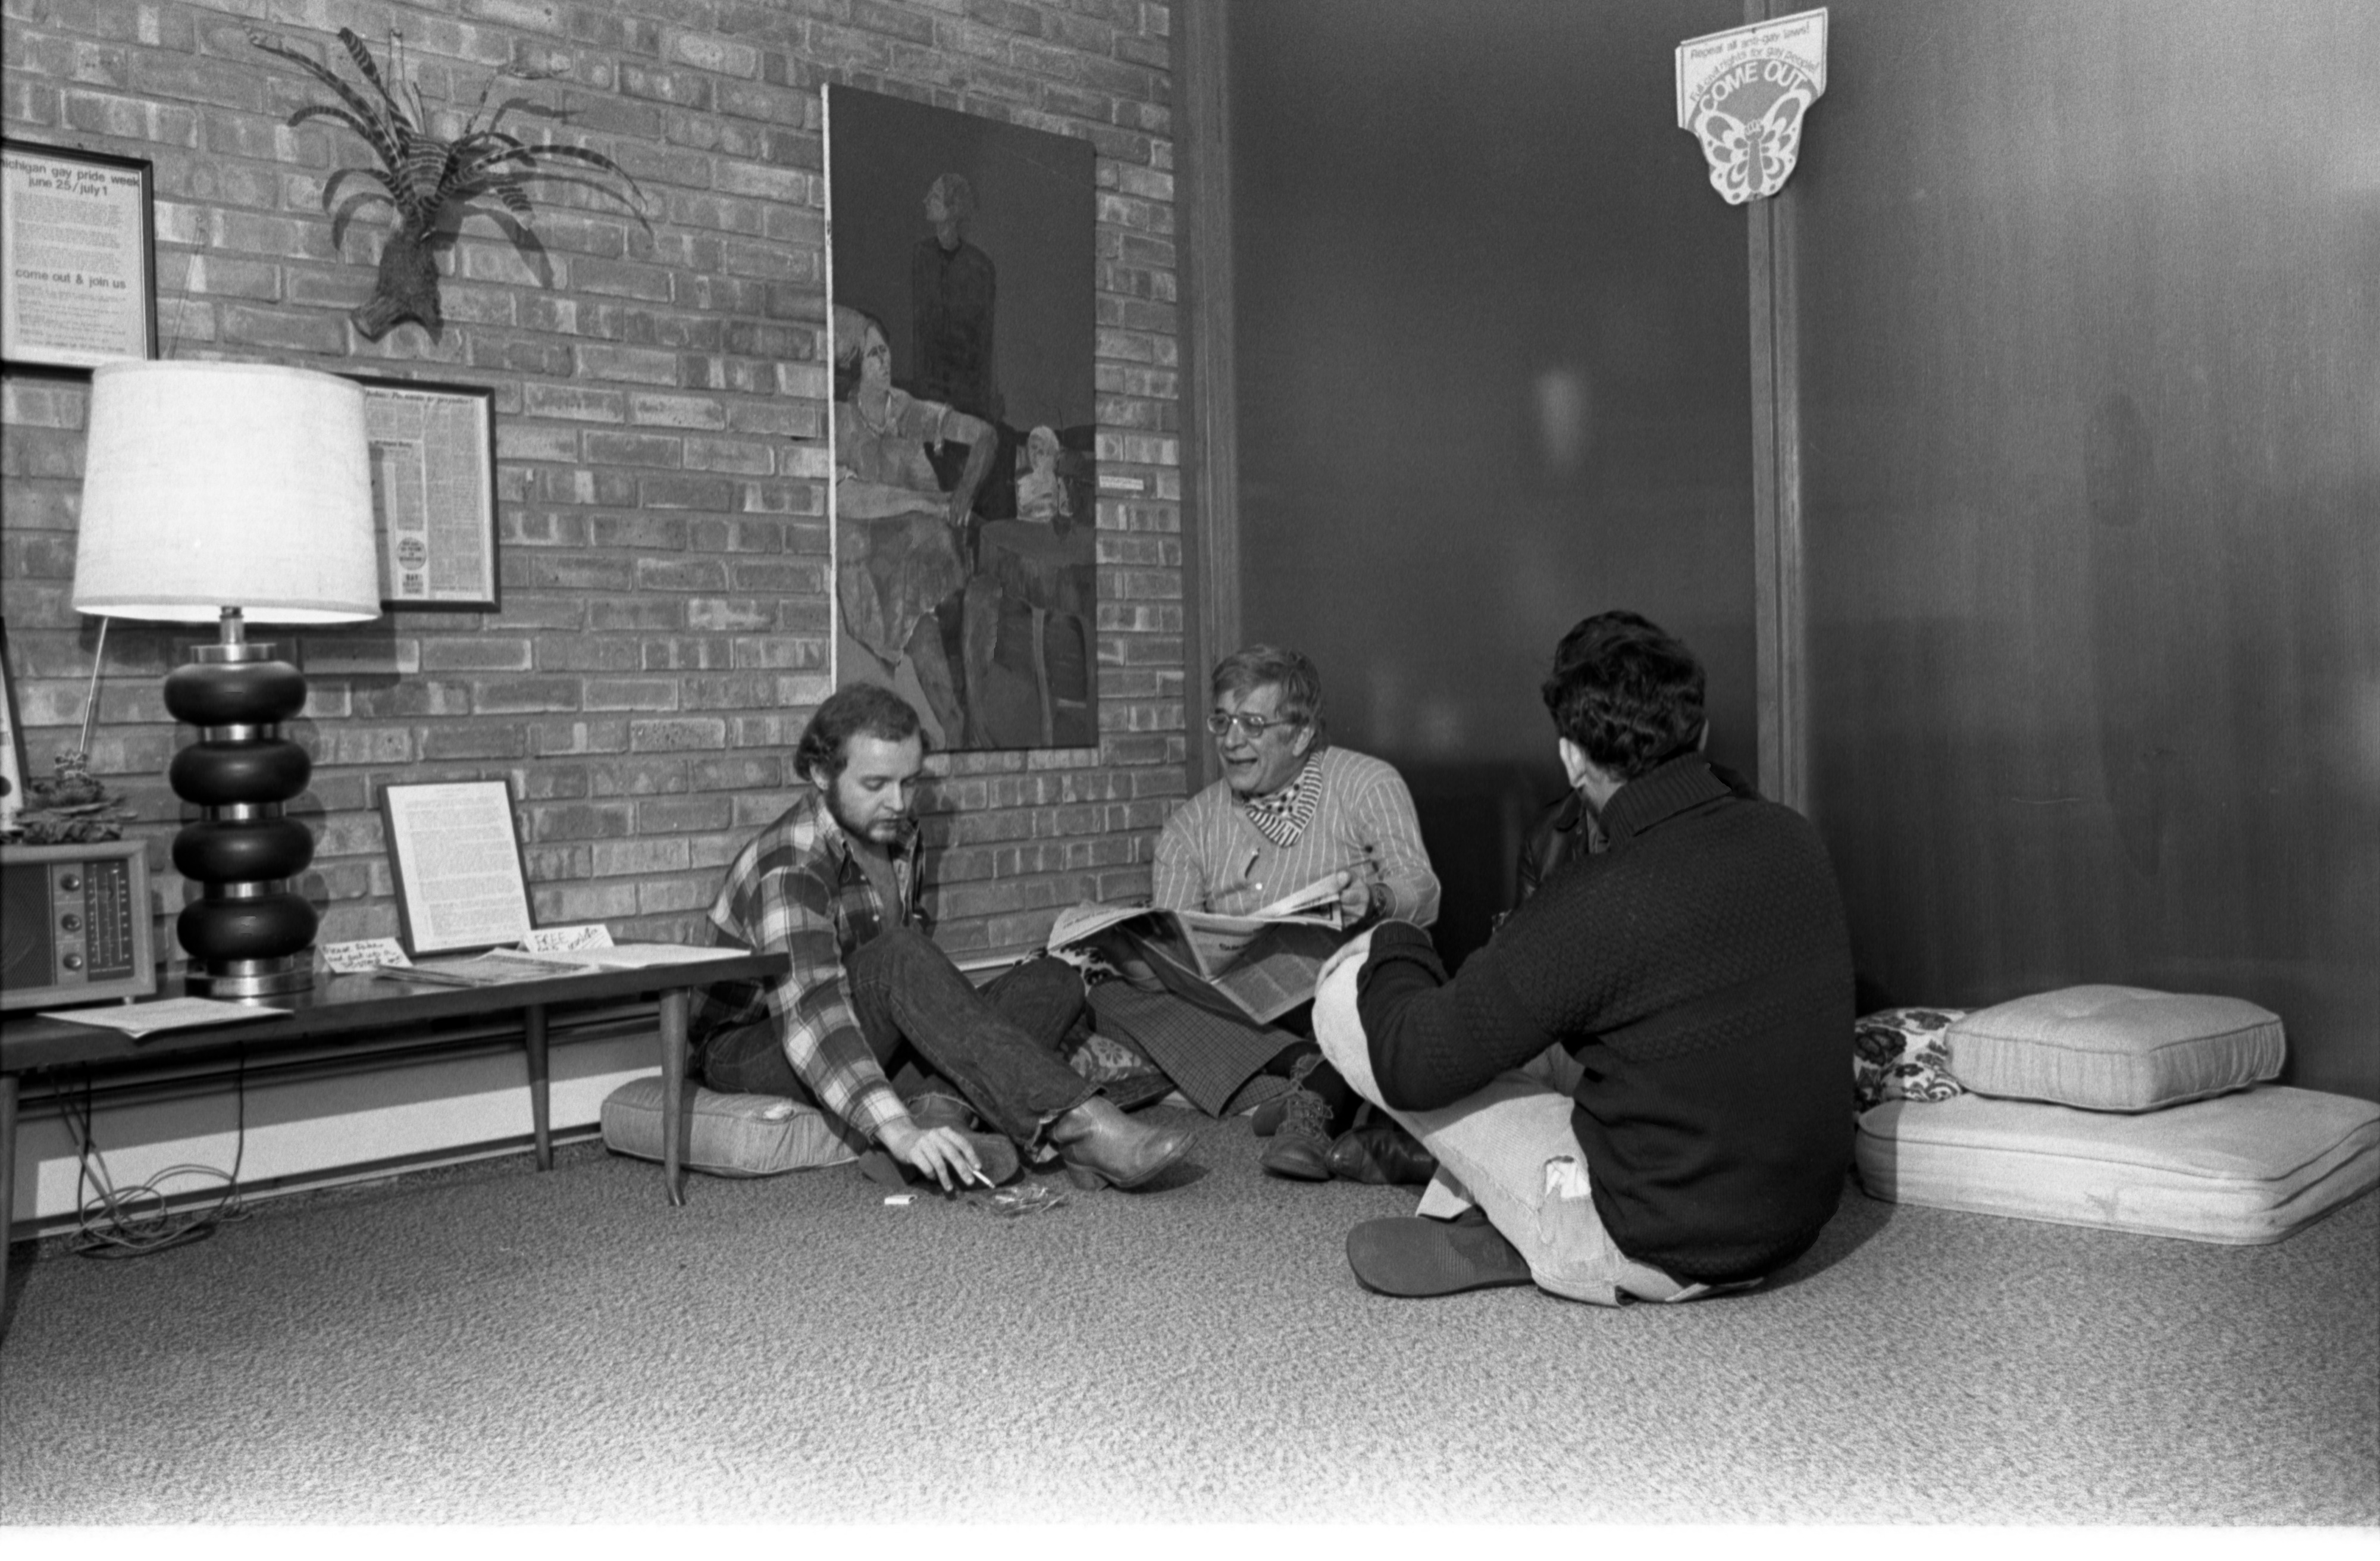 Members Of The Gay Community Services Center At 612 S. Forest, December 1, 1976 image